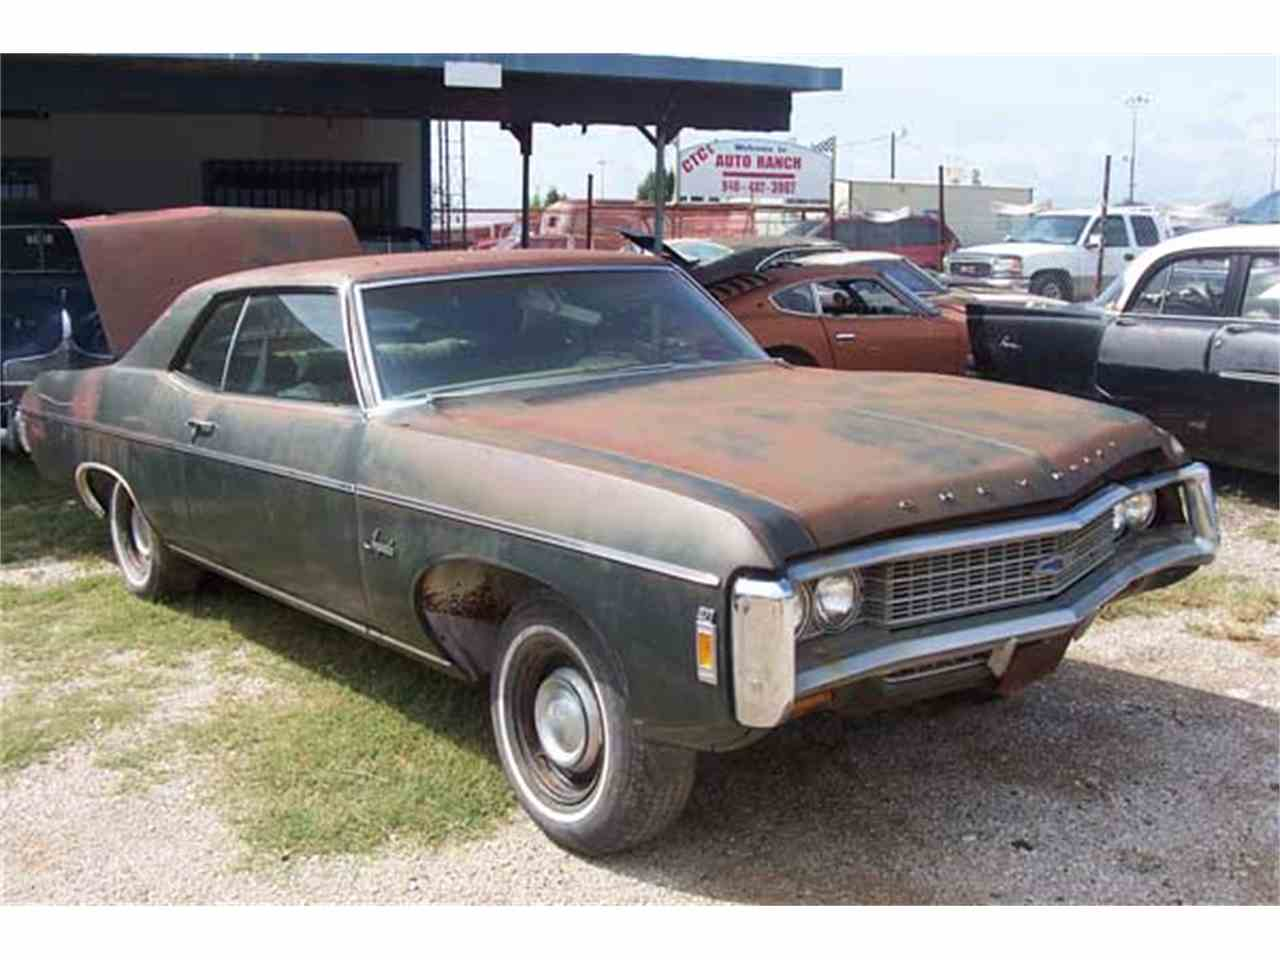 Impala 1976 chevy impala 1969 Chevrolet Impala for Sale on ClassicCars.com